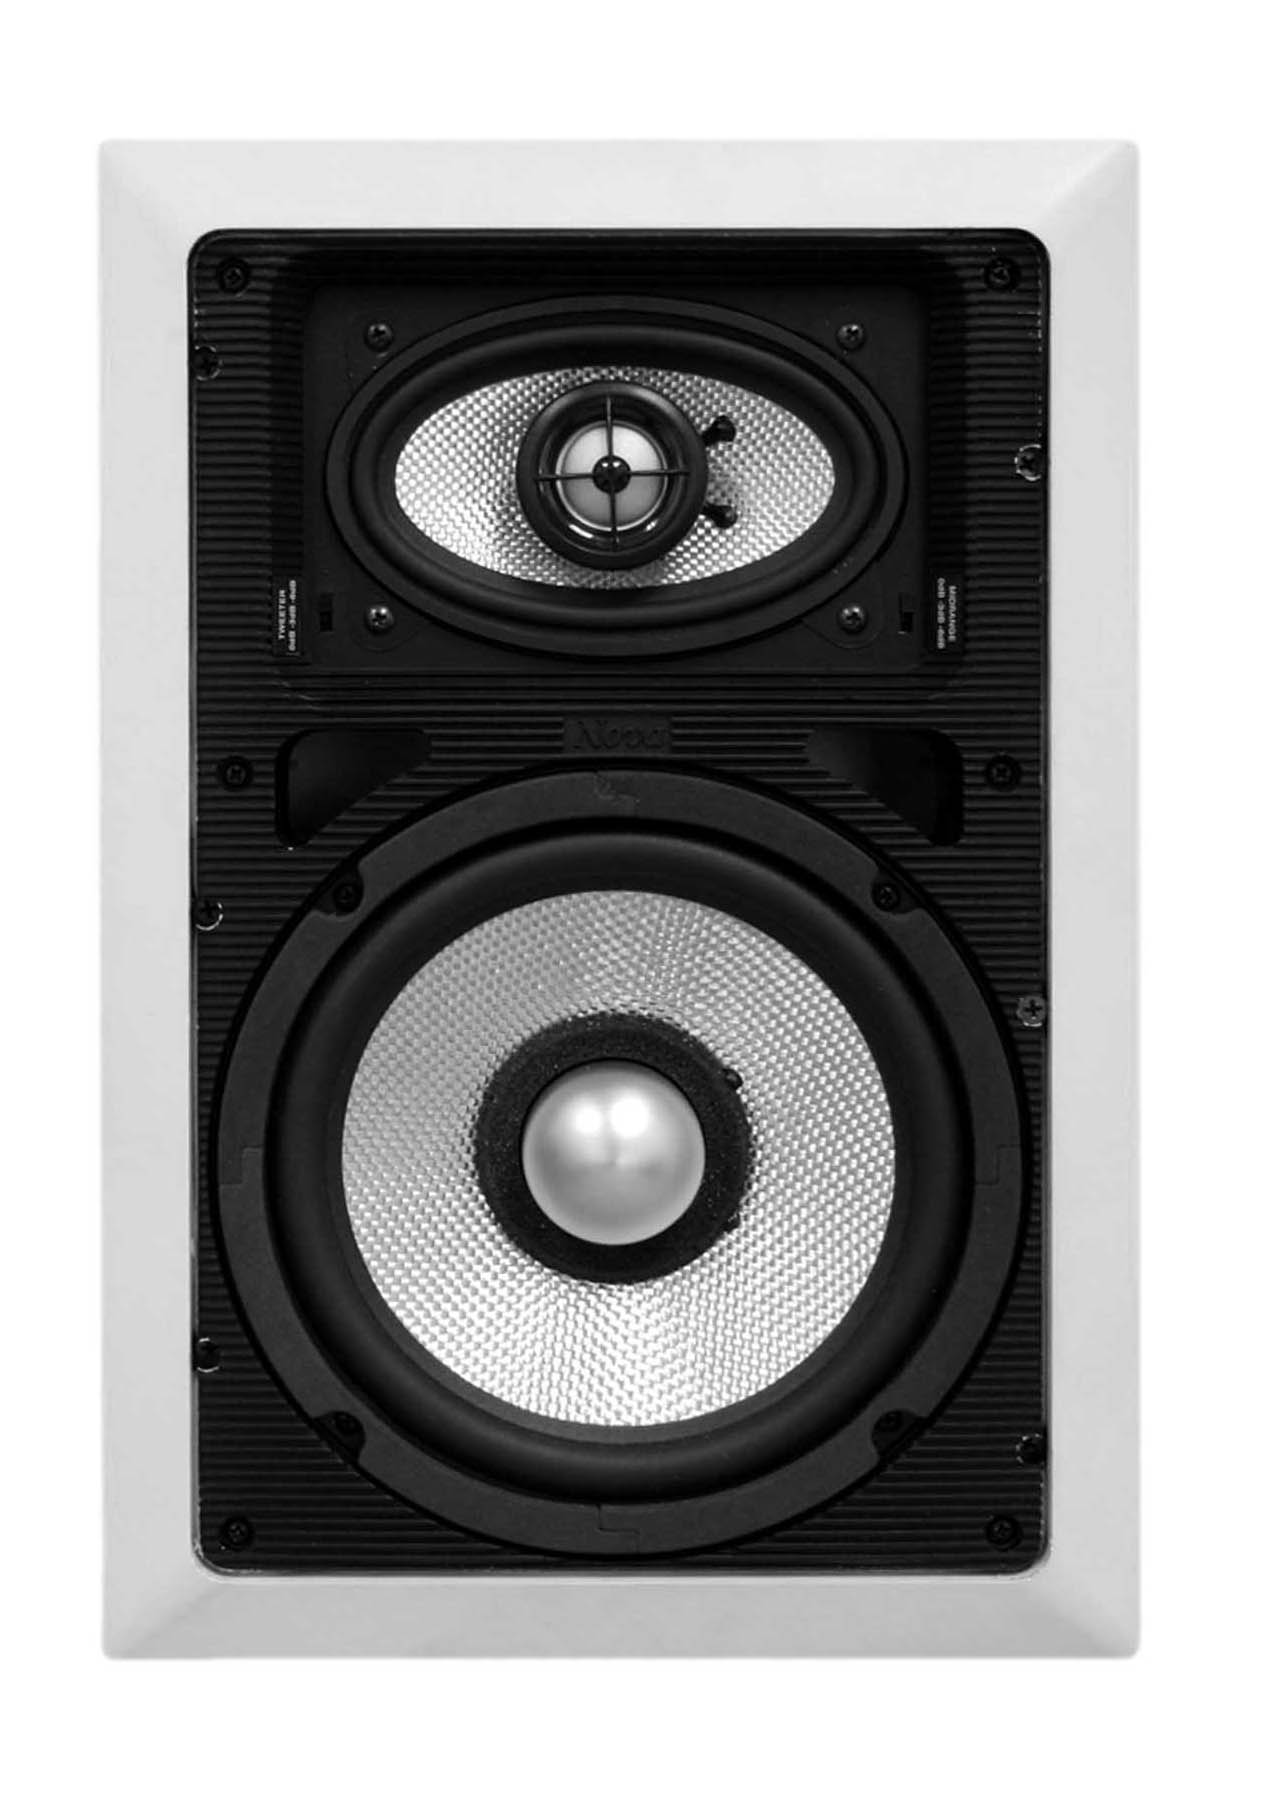 Imãge-846X In-Wall Speaker